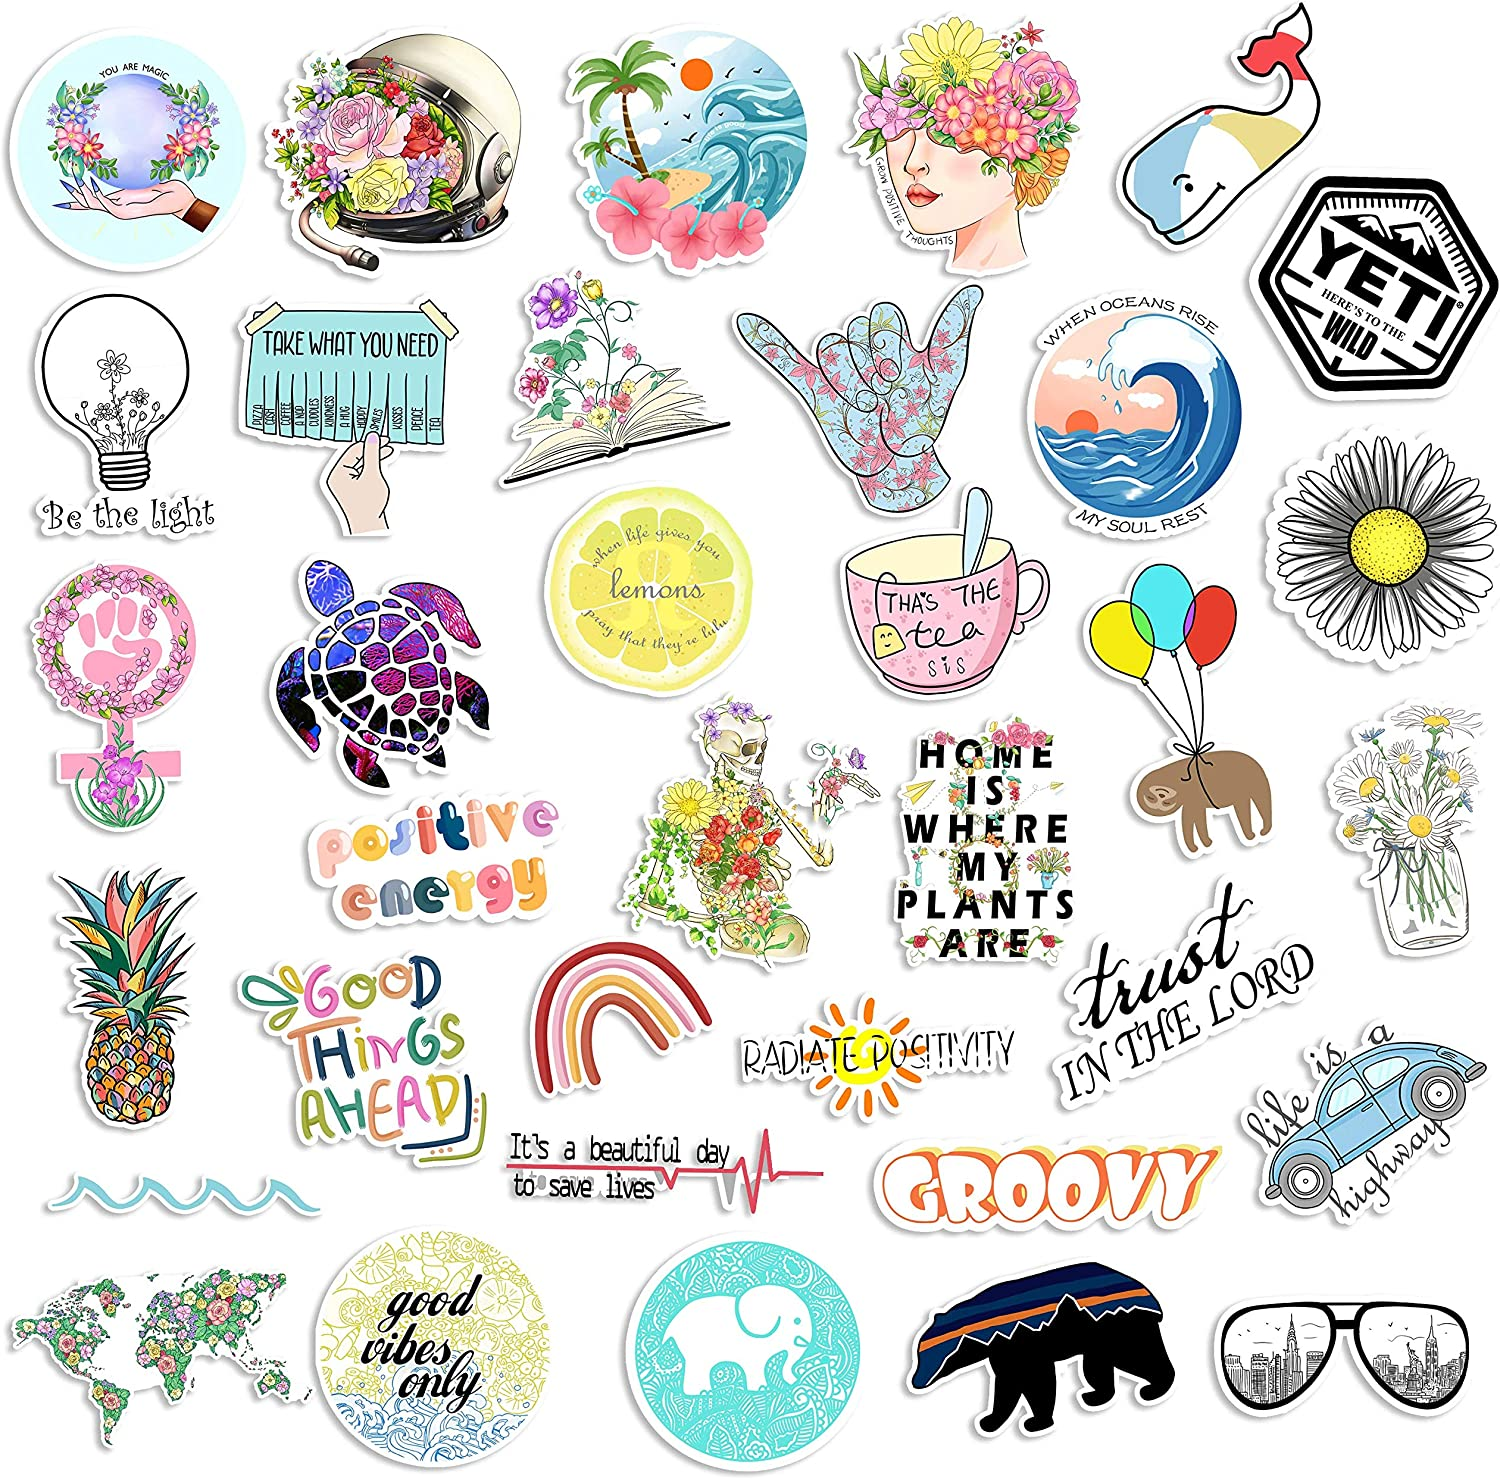 35 Cute Vsco Aesthetic Stickers - Lovely Trendy Positive Good Vibes Flowers Sticker for Laptop Hydro Flask Water Bottle Phone Case Skateboard - Waterproof Decals for Kids, Teens School Students Girls